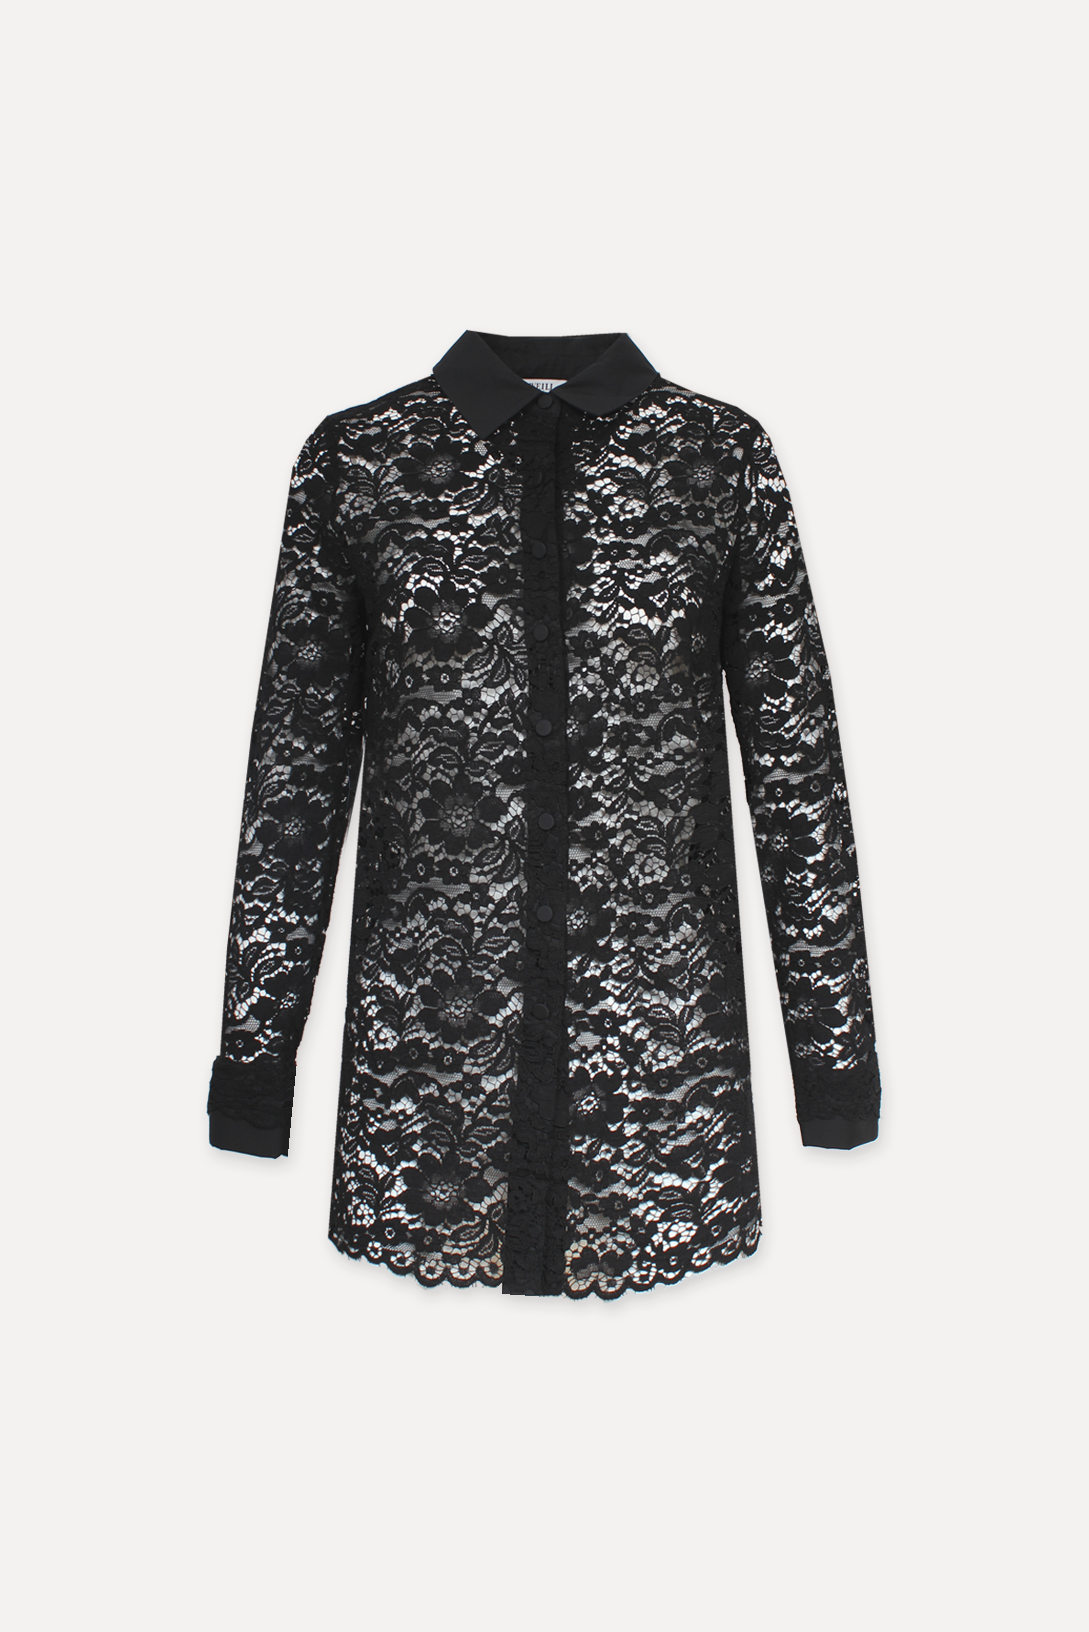 Lace shirt - MARILISE NOIR